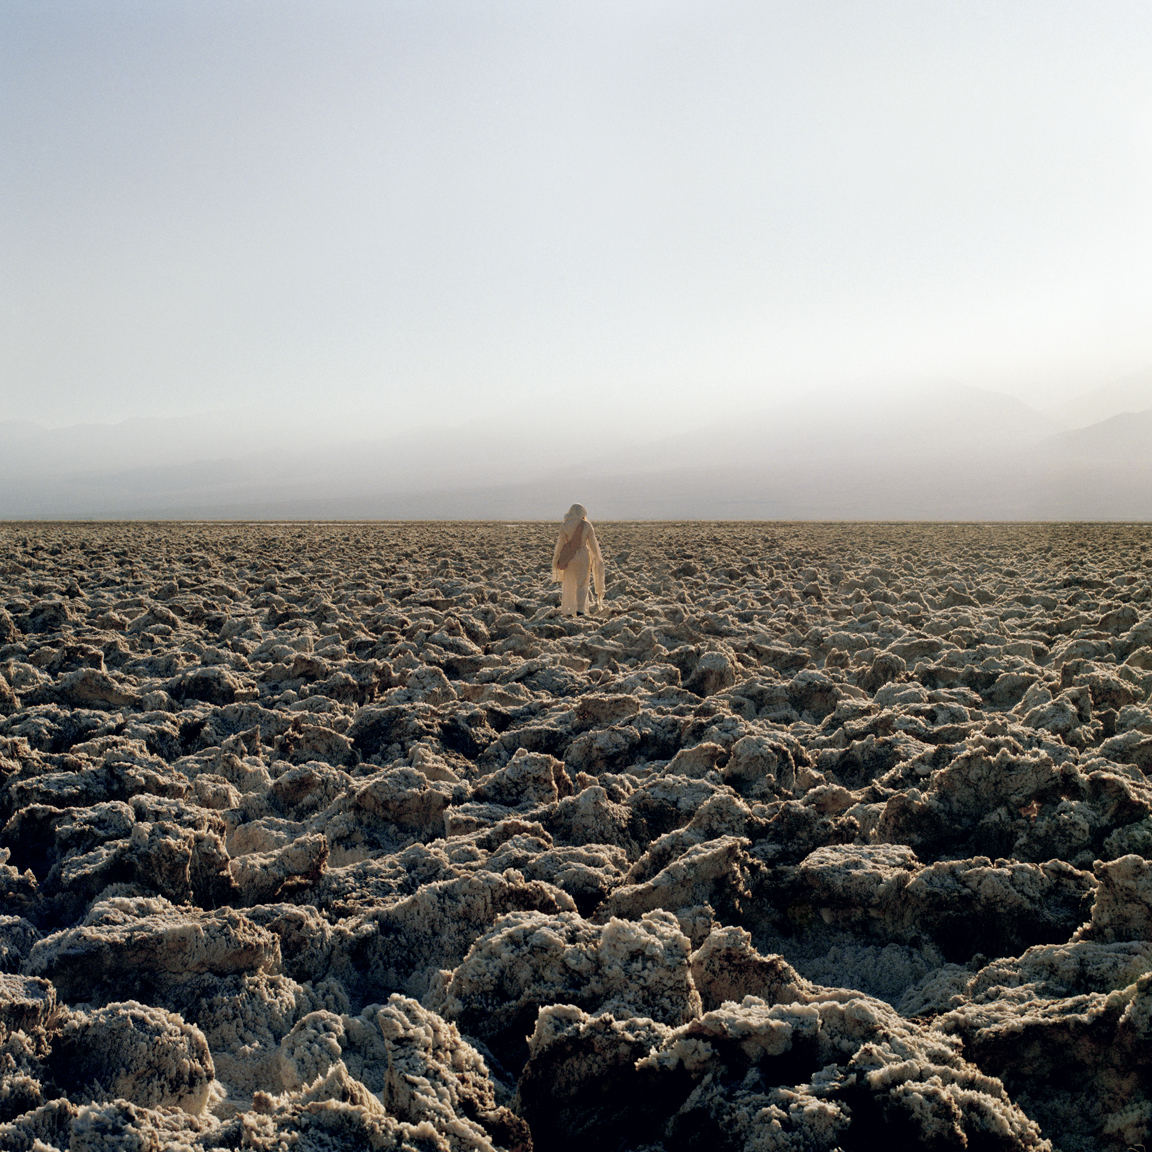 Mary Mattingly Series: Nomadographies 2007, Death Valley, California, USA